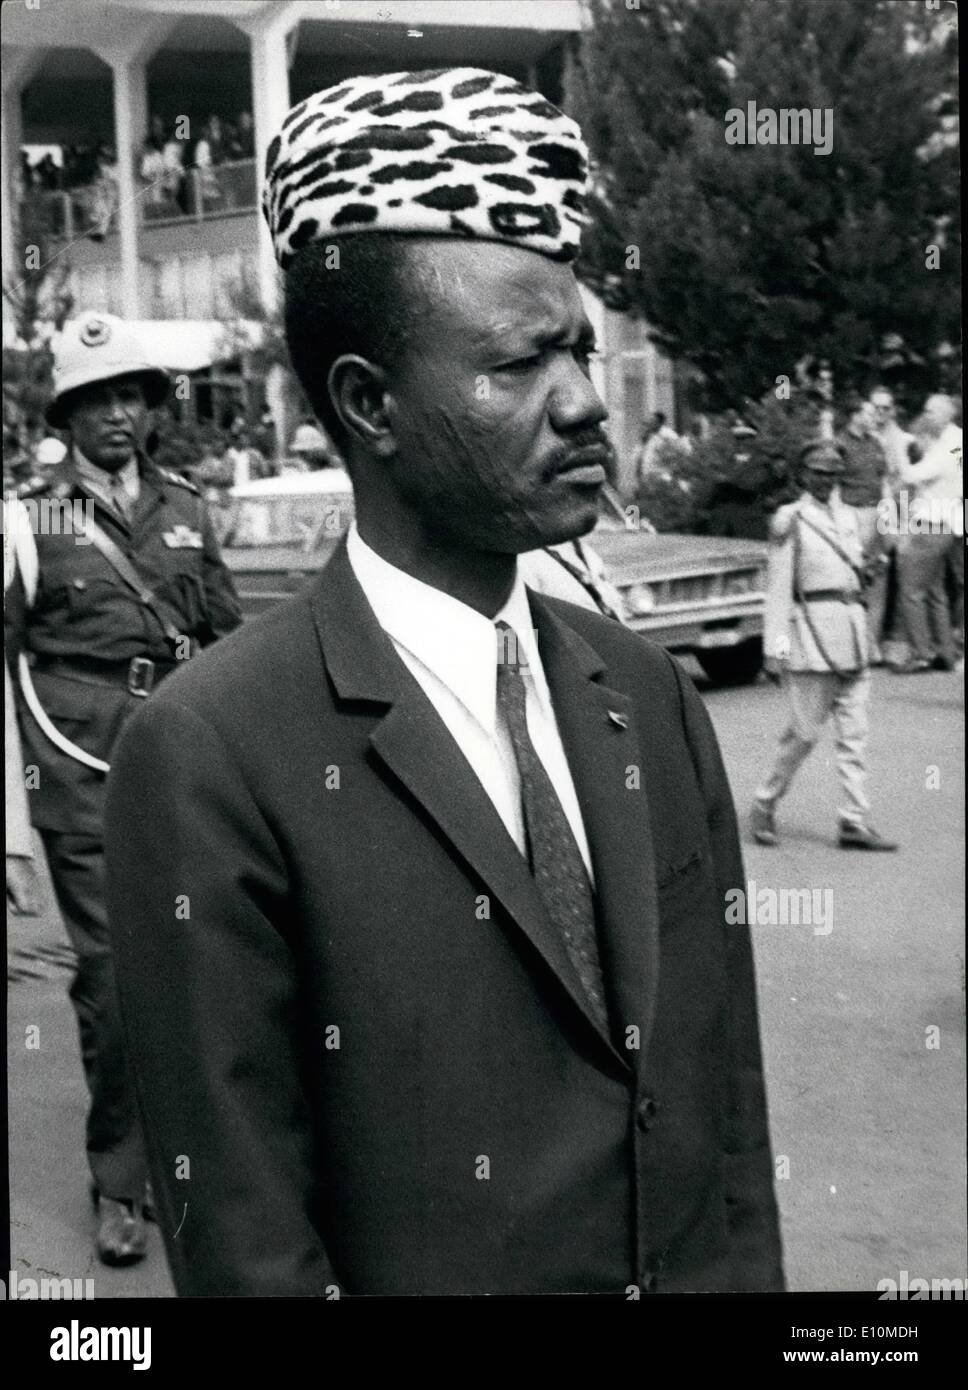 Jun. 06, 1973 - Francois Tombalbaye, President of Chad. Born 1918. Elected to Territorial Council, 1952. Prime Minister, 1959. President of the Council of State, 1960. President of the Republic, 1962. Credits: Camerapix - Stock Image